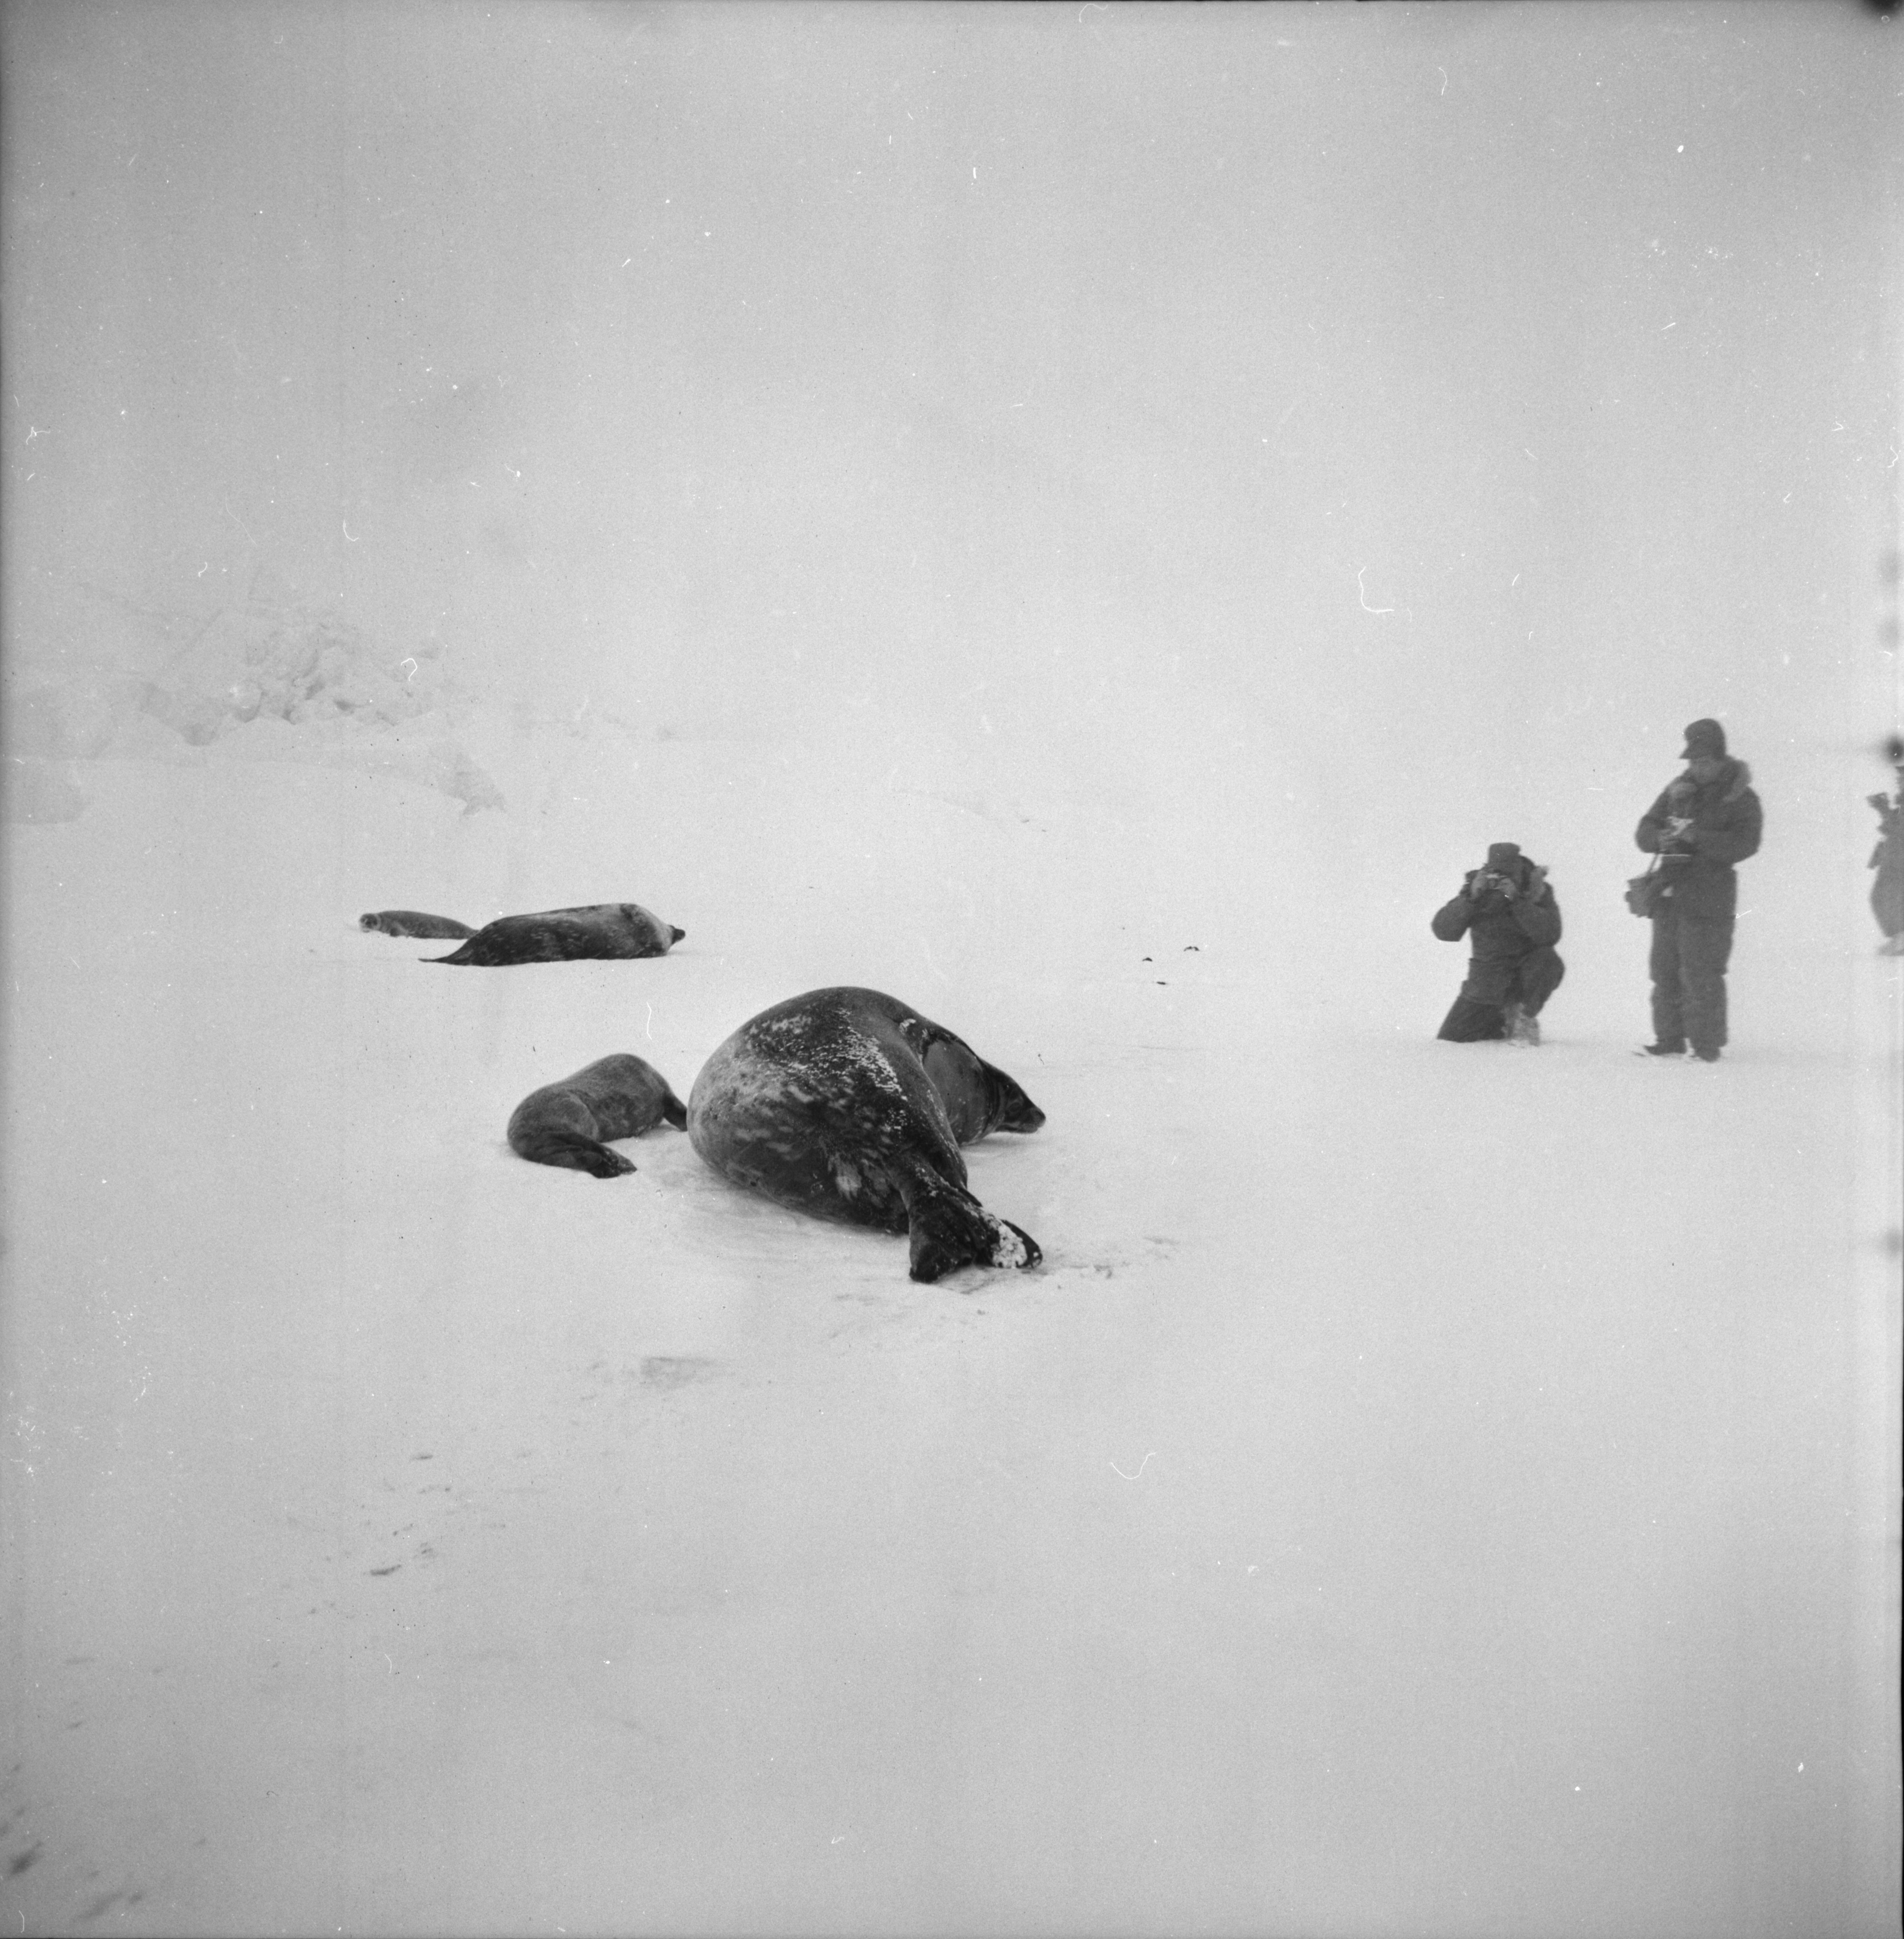 Photographing Seals, U-M Research Trip to Antarctica, November 1962 image